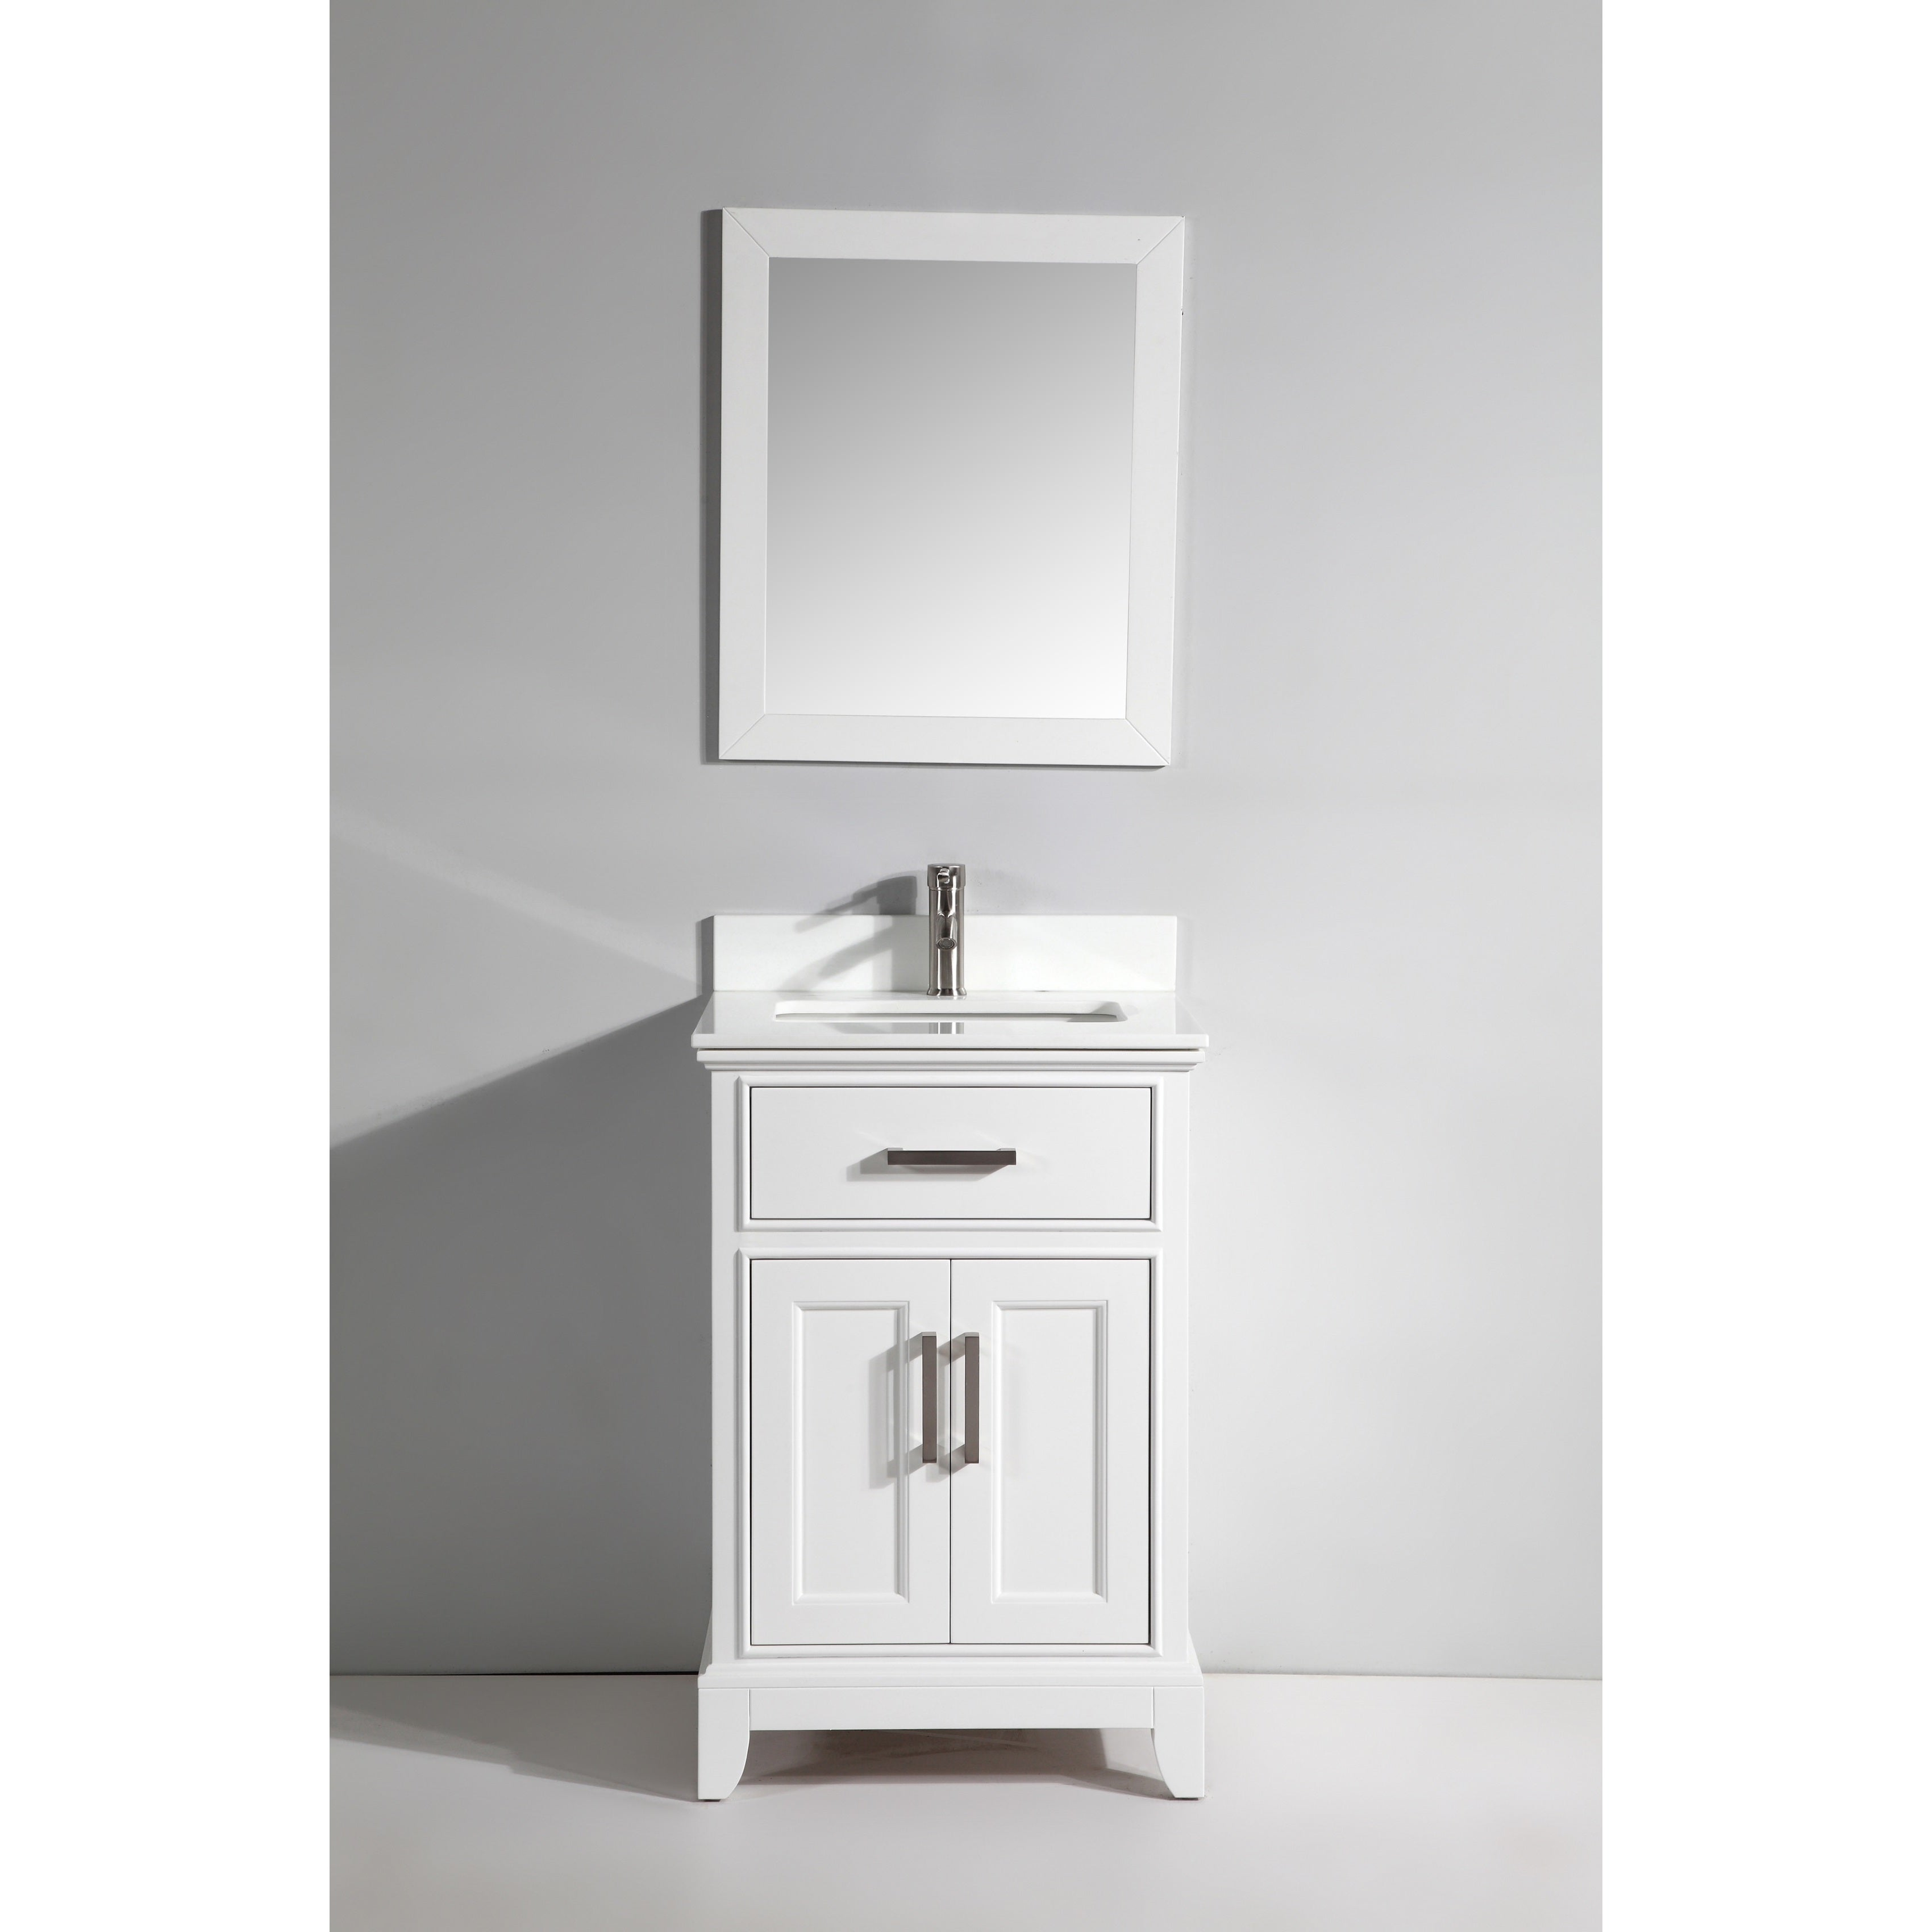 design of double bathrooms bunch best vanities for country sink vanity tops ideas bathroom inch solutions home cabinets sinks depot